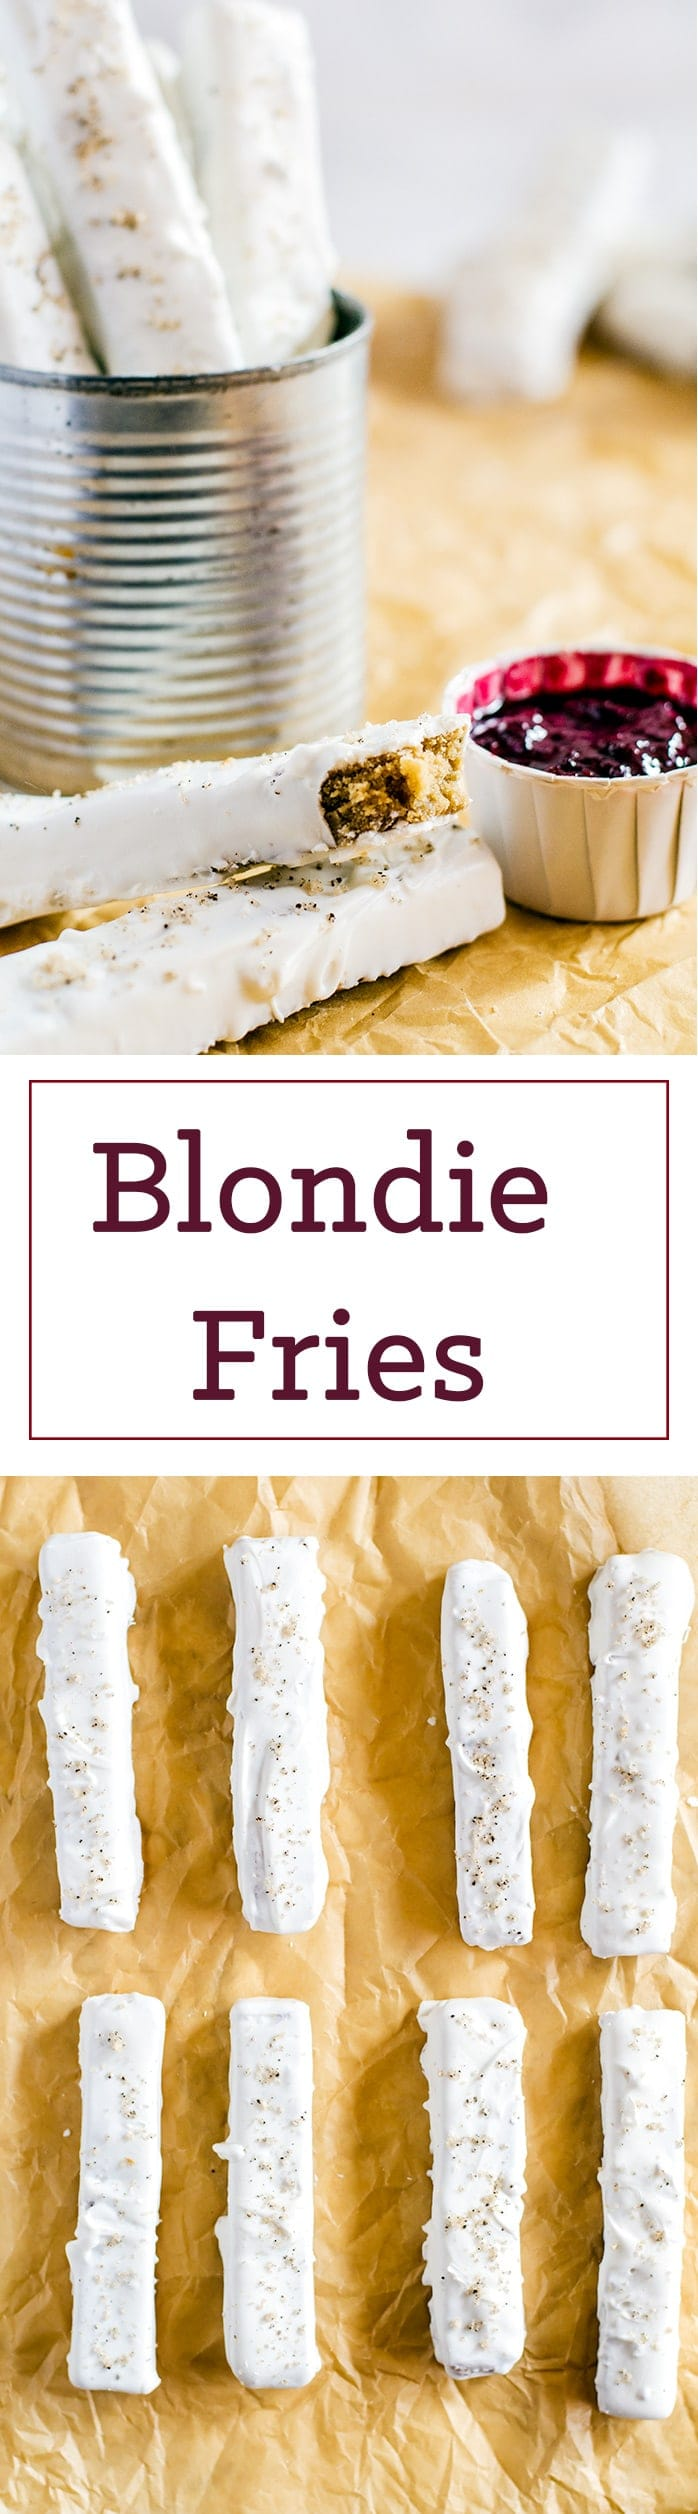 Fudgy, aromatic blondies taste like a bite of butterscotch from a sweet balance of brown butter and brown sugar. Cut up into slices, dipped in white chocolate, and sprinkled with a vanilla-infused salt to make blondie fries aka your new addiction.